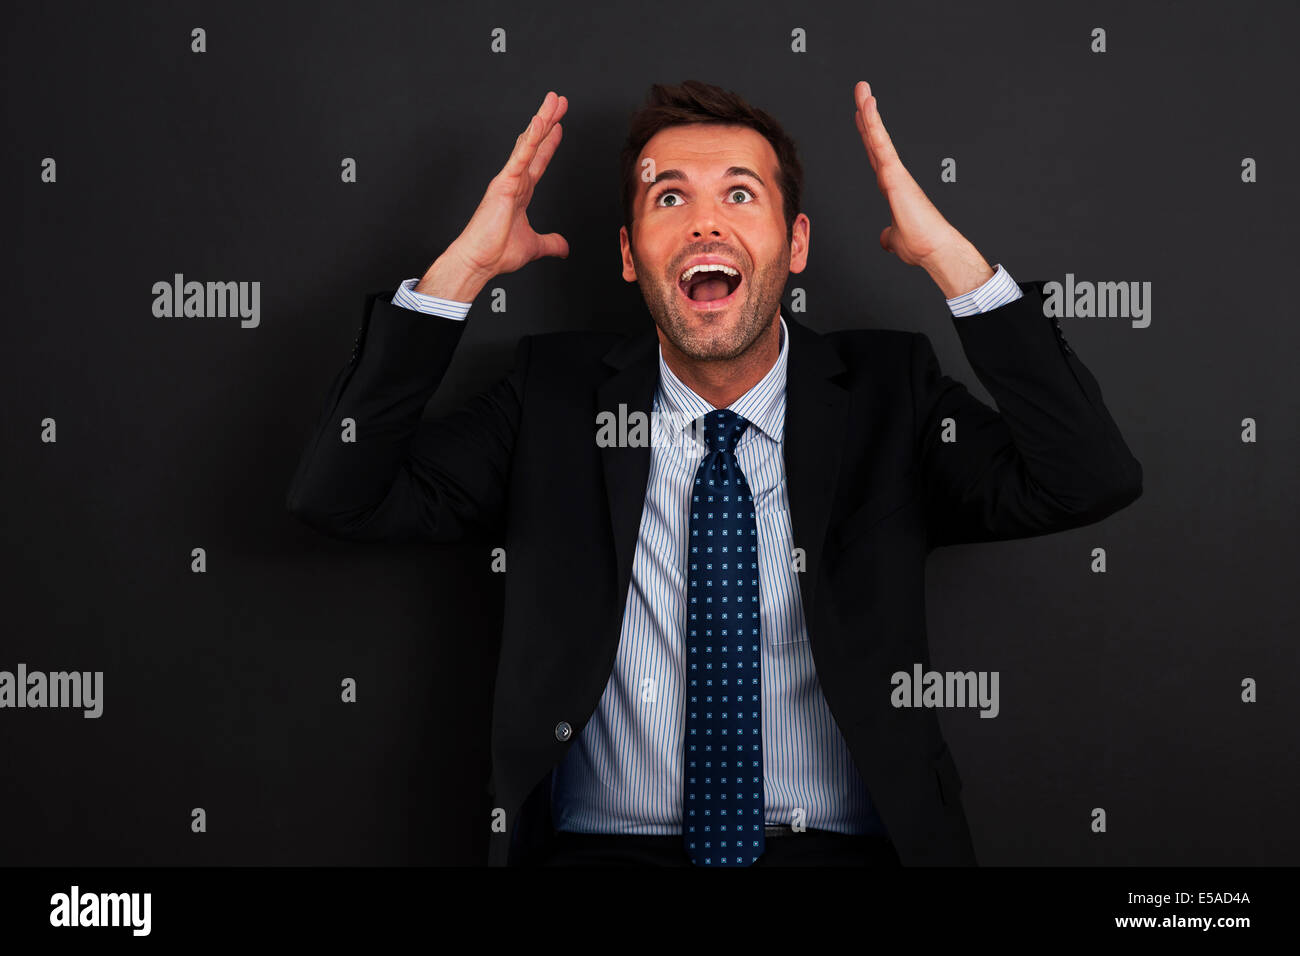 Unbelievable! It's big opportunity for me, Debica, Poland - Stock Image